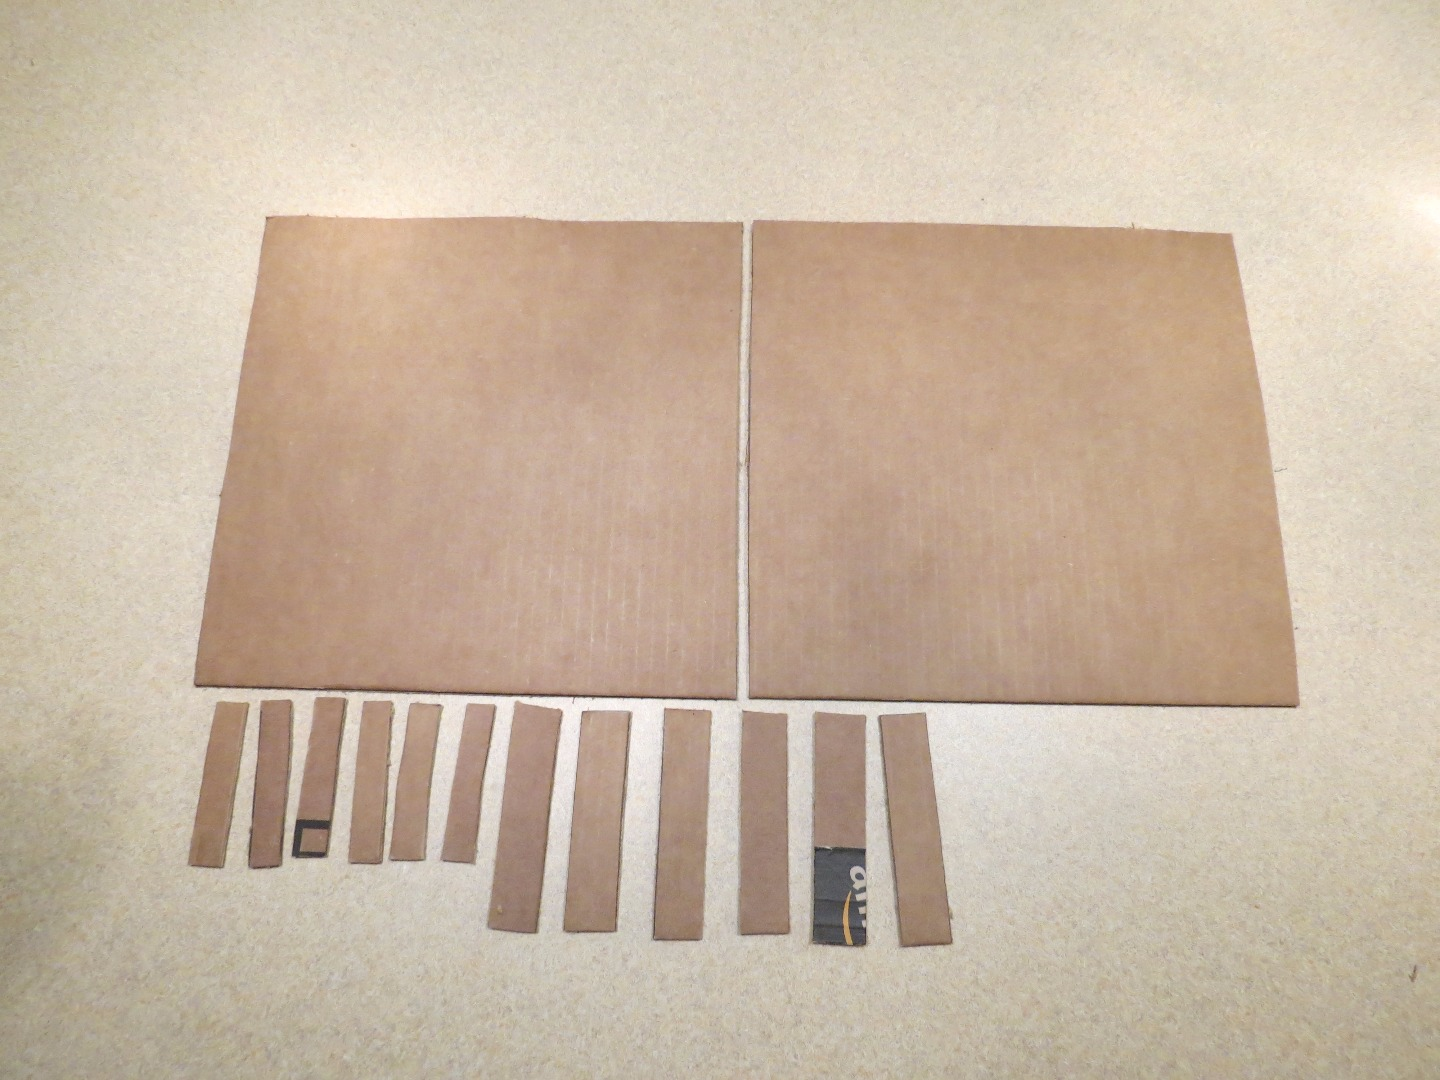 Picture of Cut the Mold Components